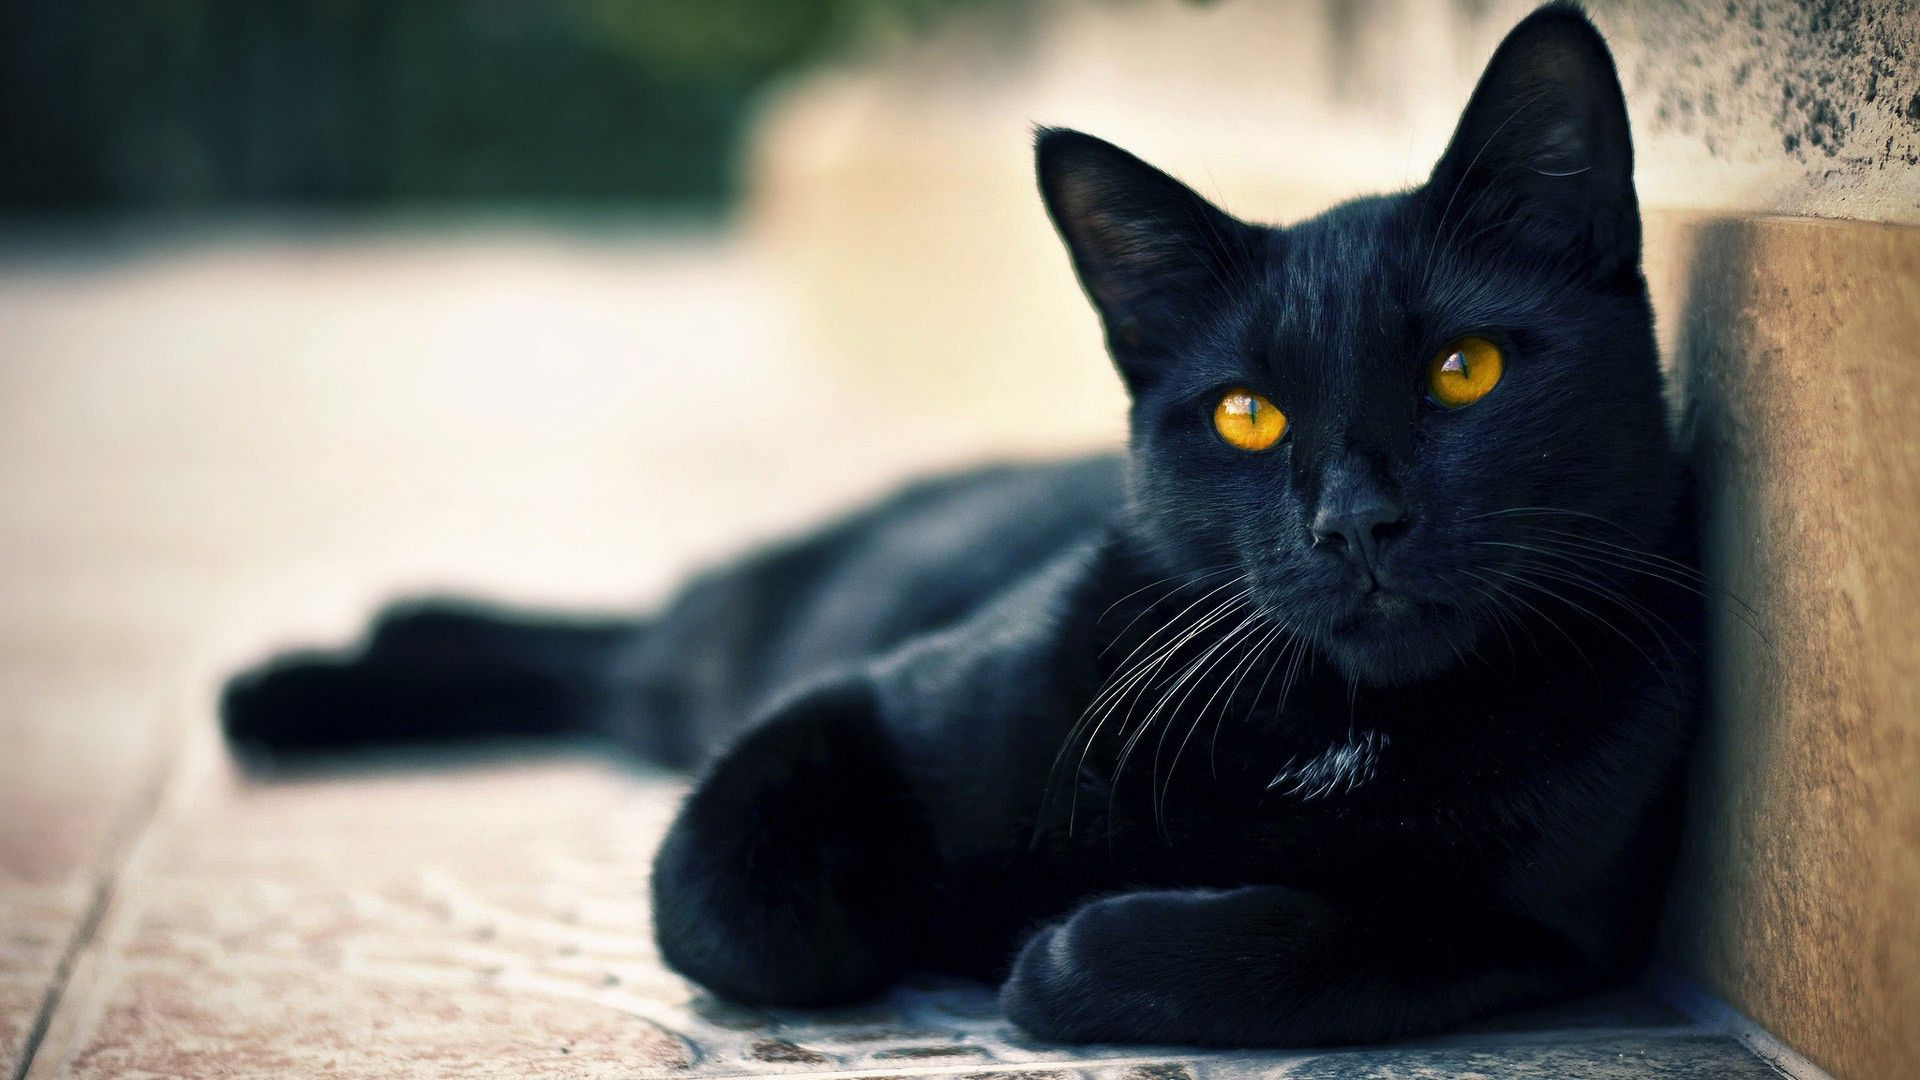 The Top 5 Pictures Of Black Cats Cats Paradise Cute Black Cats Black Cat Yellow Cat